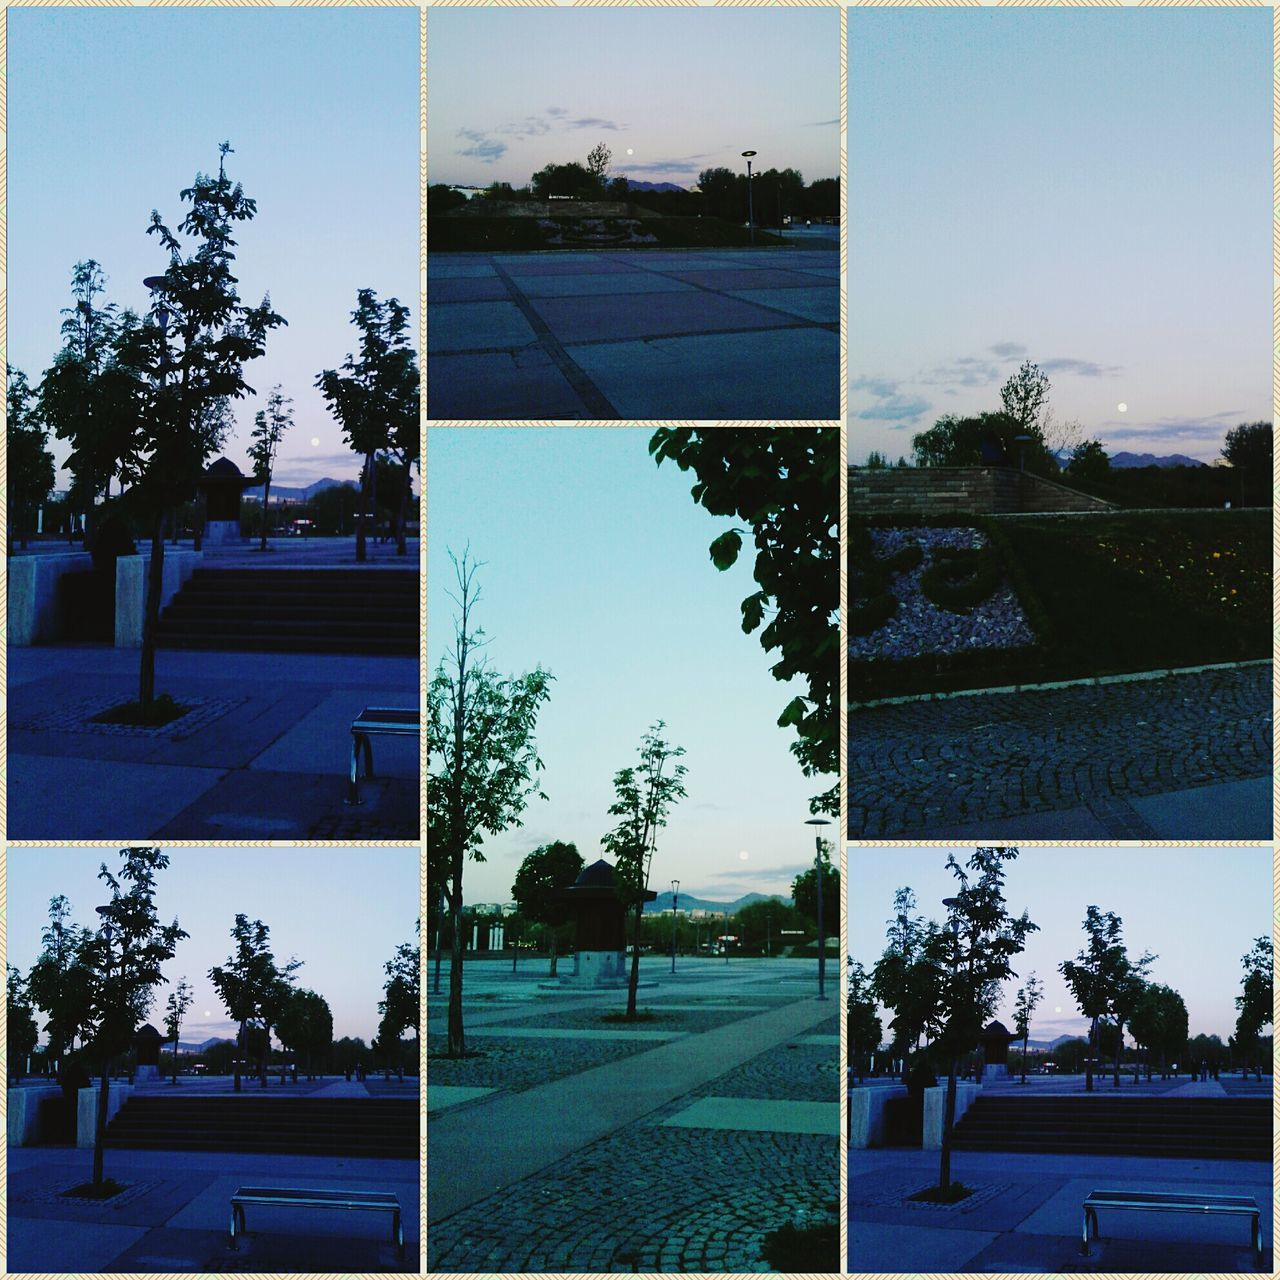 Hugging A Tree Walking Around Moon Moonlight Enjoying The Sun Altinpark Green Tree Relaxing Walking Around Taking Photos Eye4photography  Kolaj Eyemphotography Samsung Samsungphotography EyeEm Nature Lover Like4like Follow4follow EyeEm Best Shots Türkiye 💙💛 Samsungphoto Ankara/turkey Bluelight Cloud